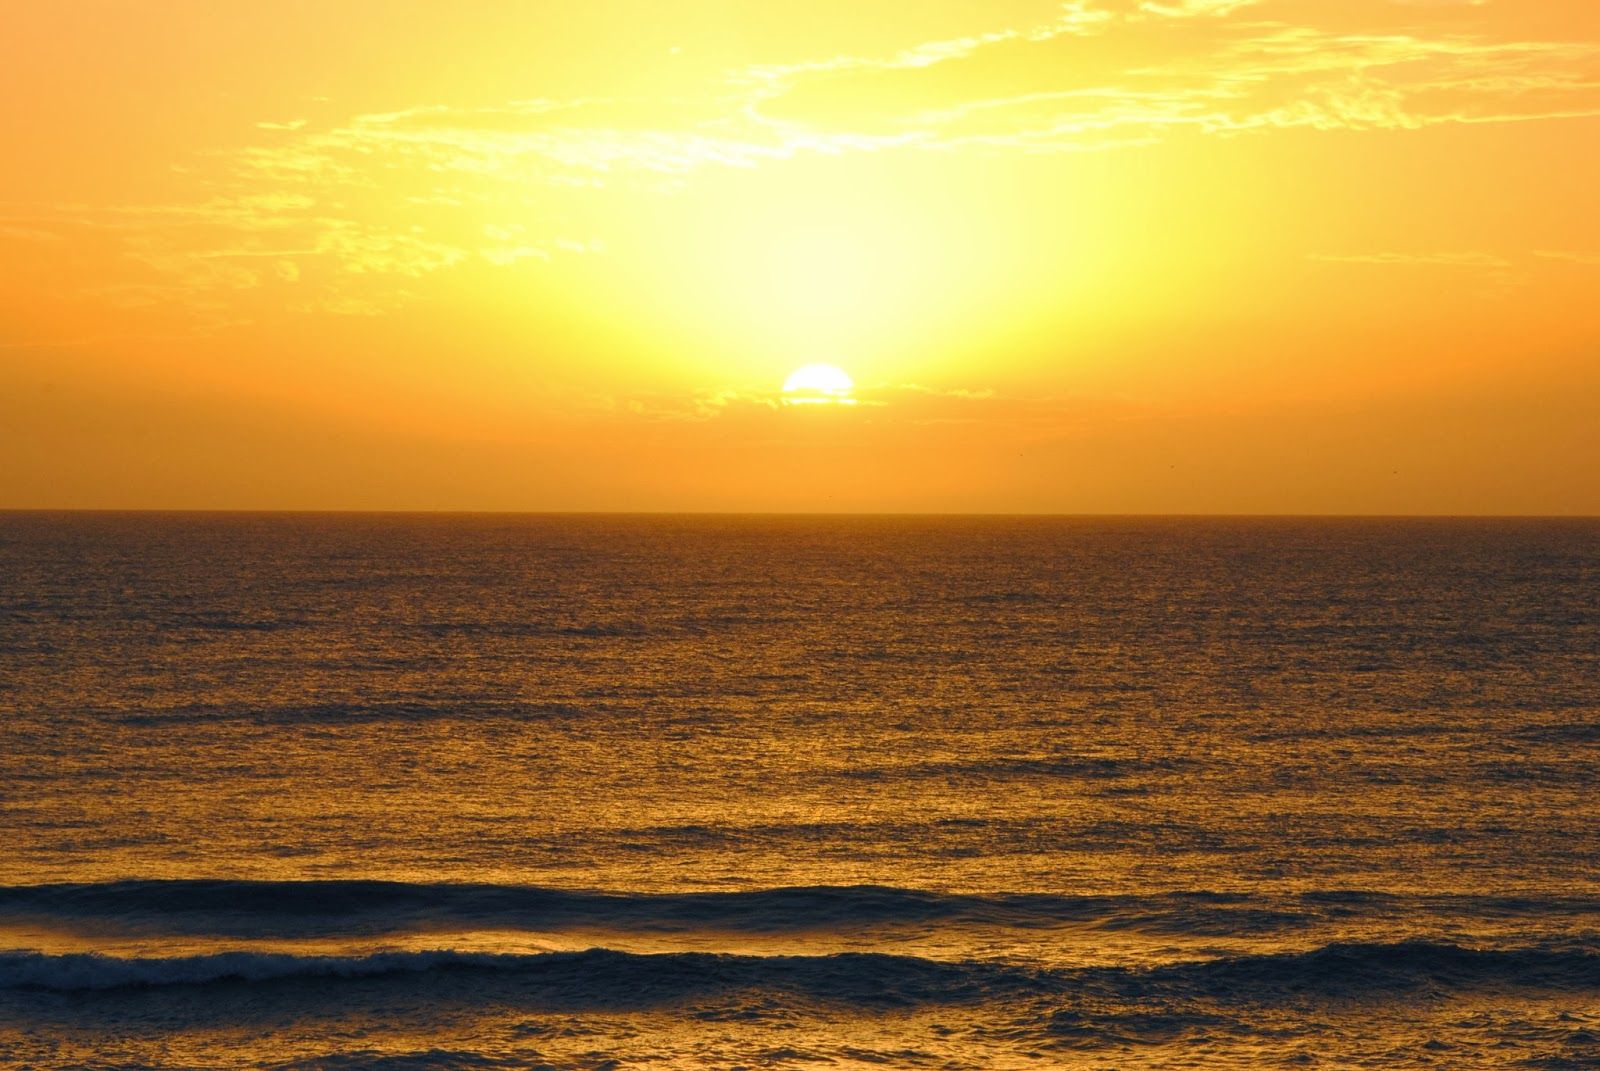 High resolution picture sunrise in villa gesell argentina